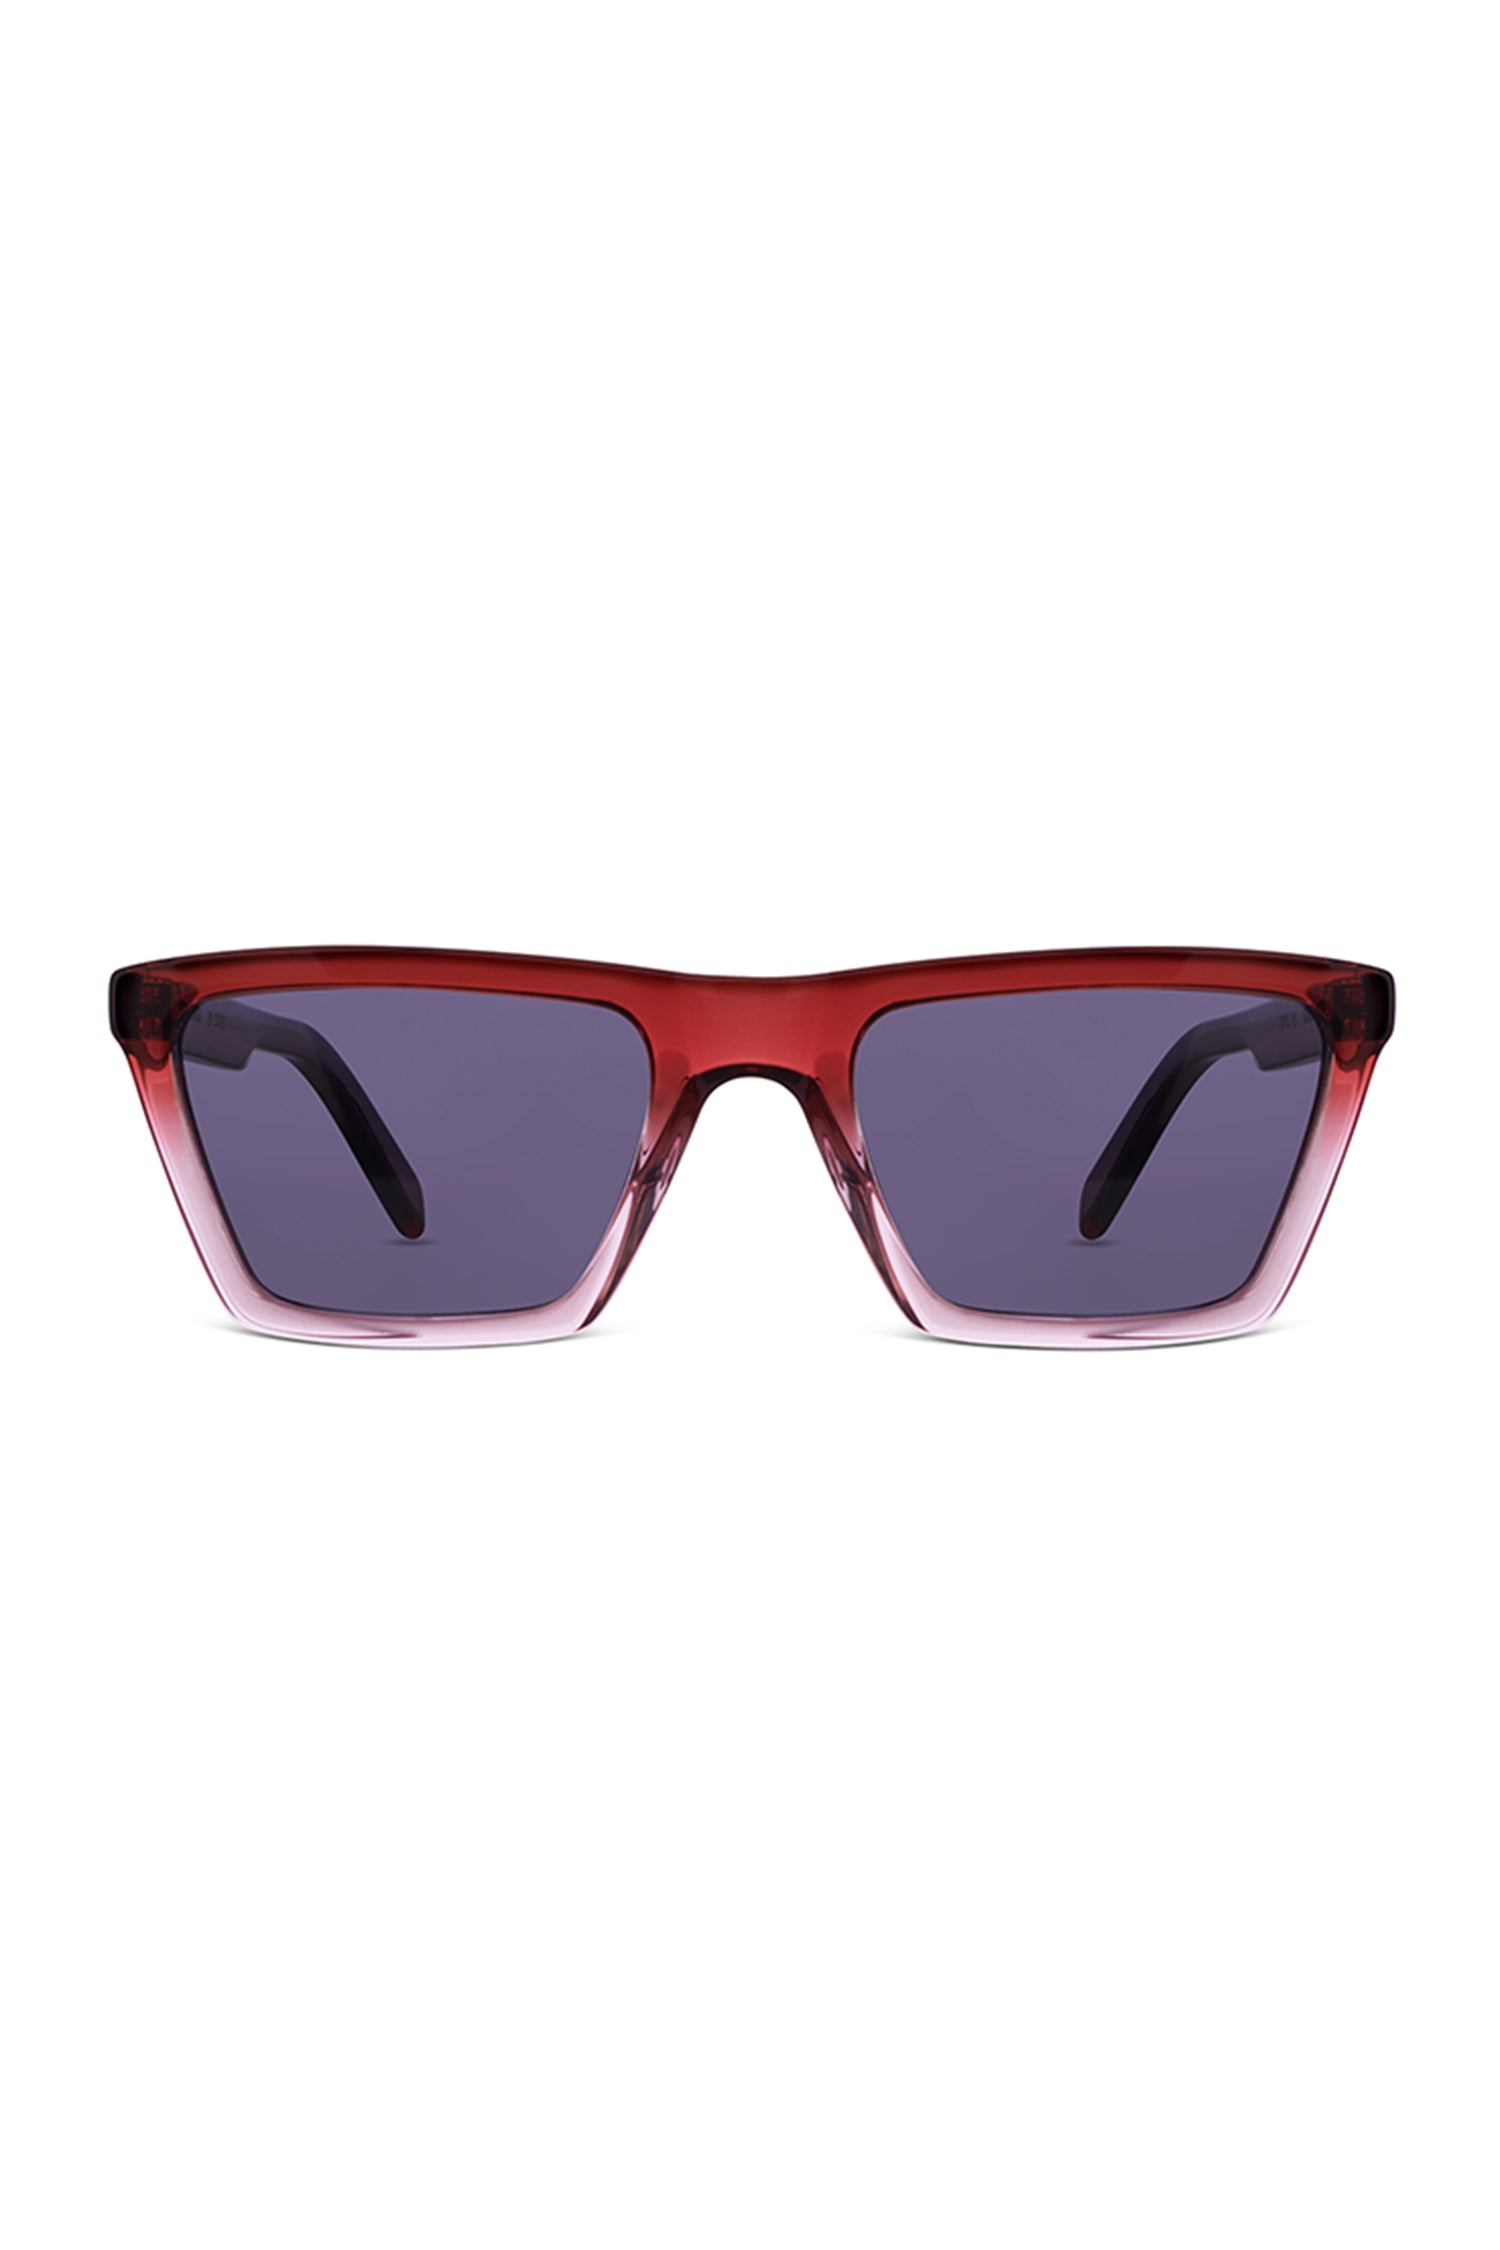 Blake -Ruby Fade with Grey Lenses